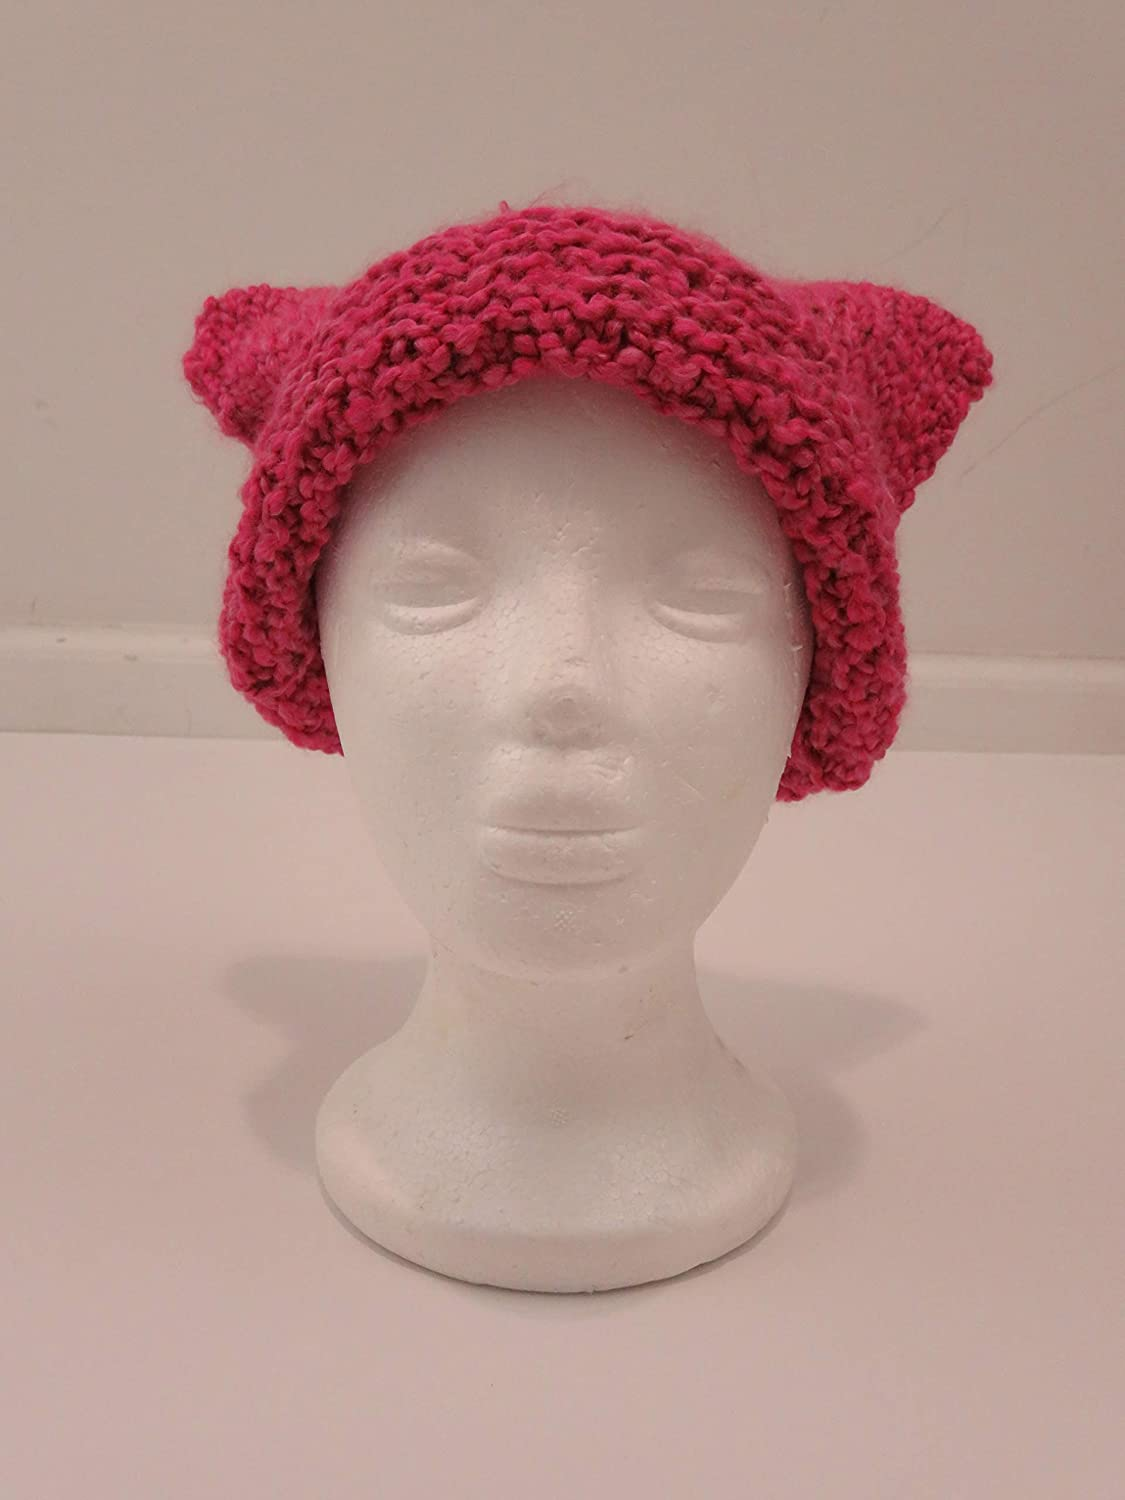 Pink Pussyhat Pink Cat Hat Womens Hat Raspberry Pink Ear Flap Cat Hat Ear Flap Hat Pink Hat Pink Beanie Pink Pussy Hat